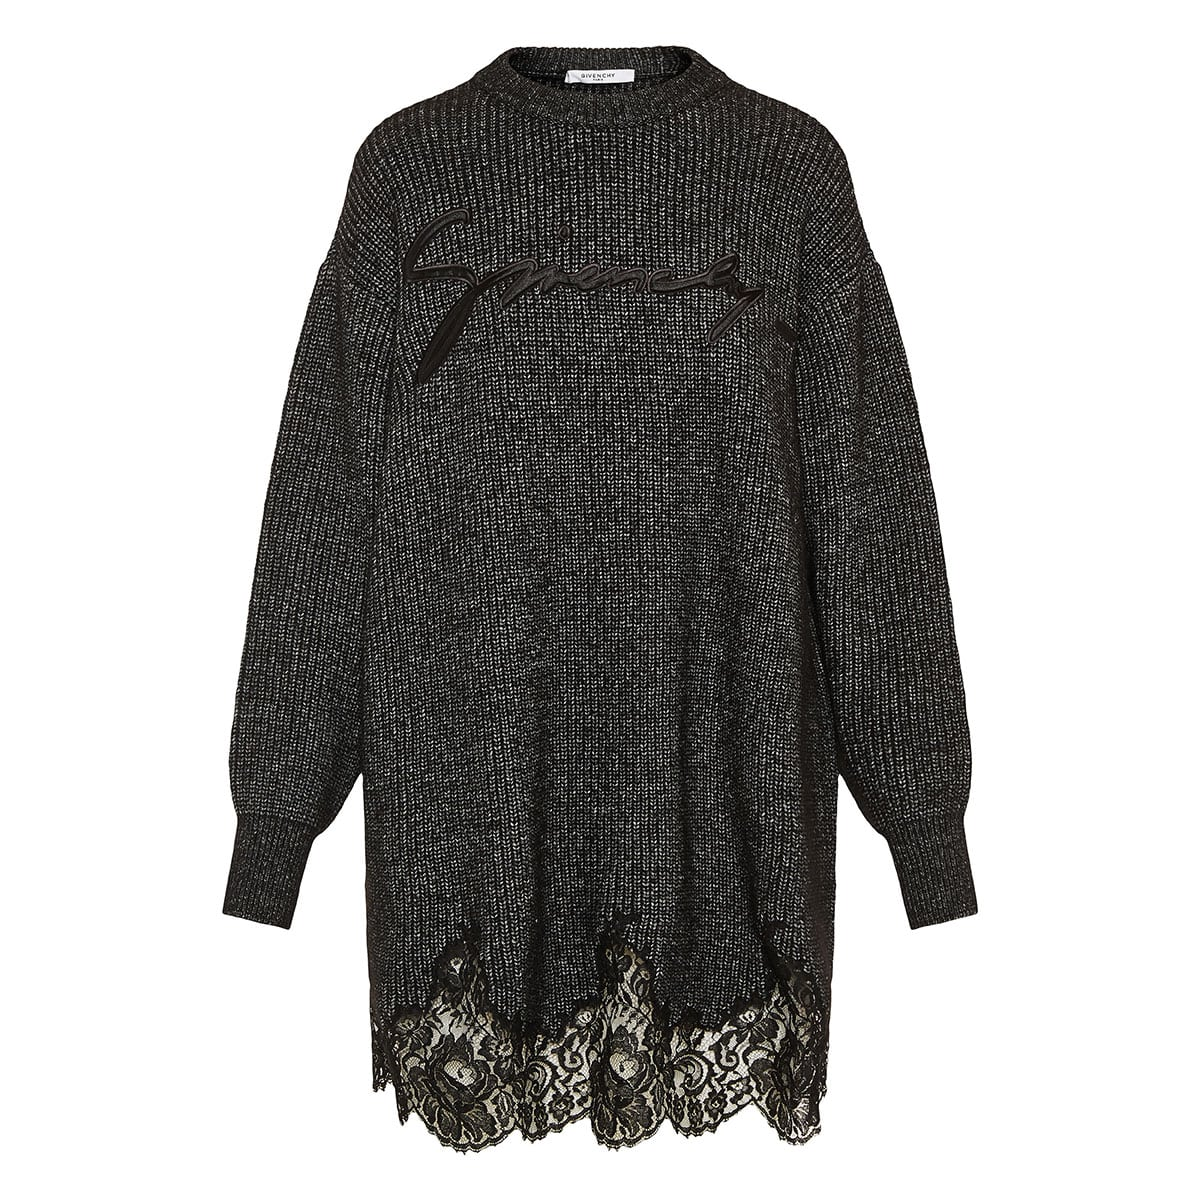 Lace-trimmed oversized logo sweater